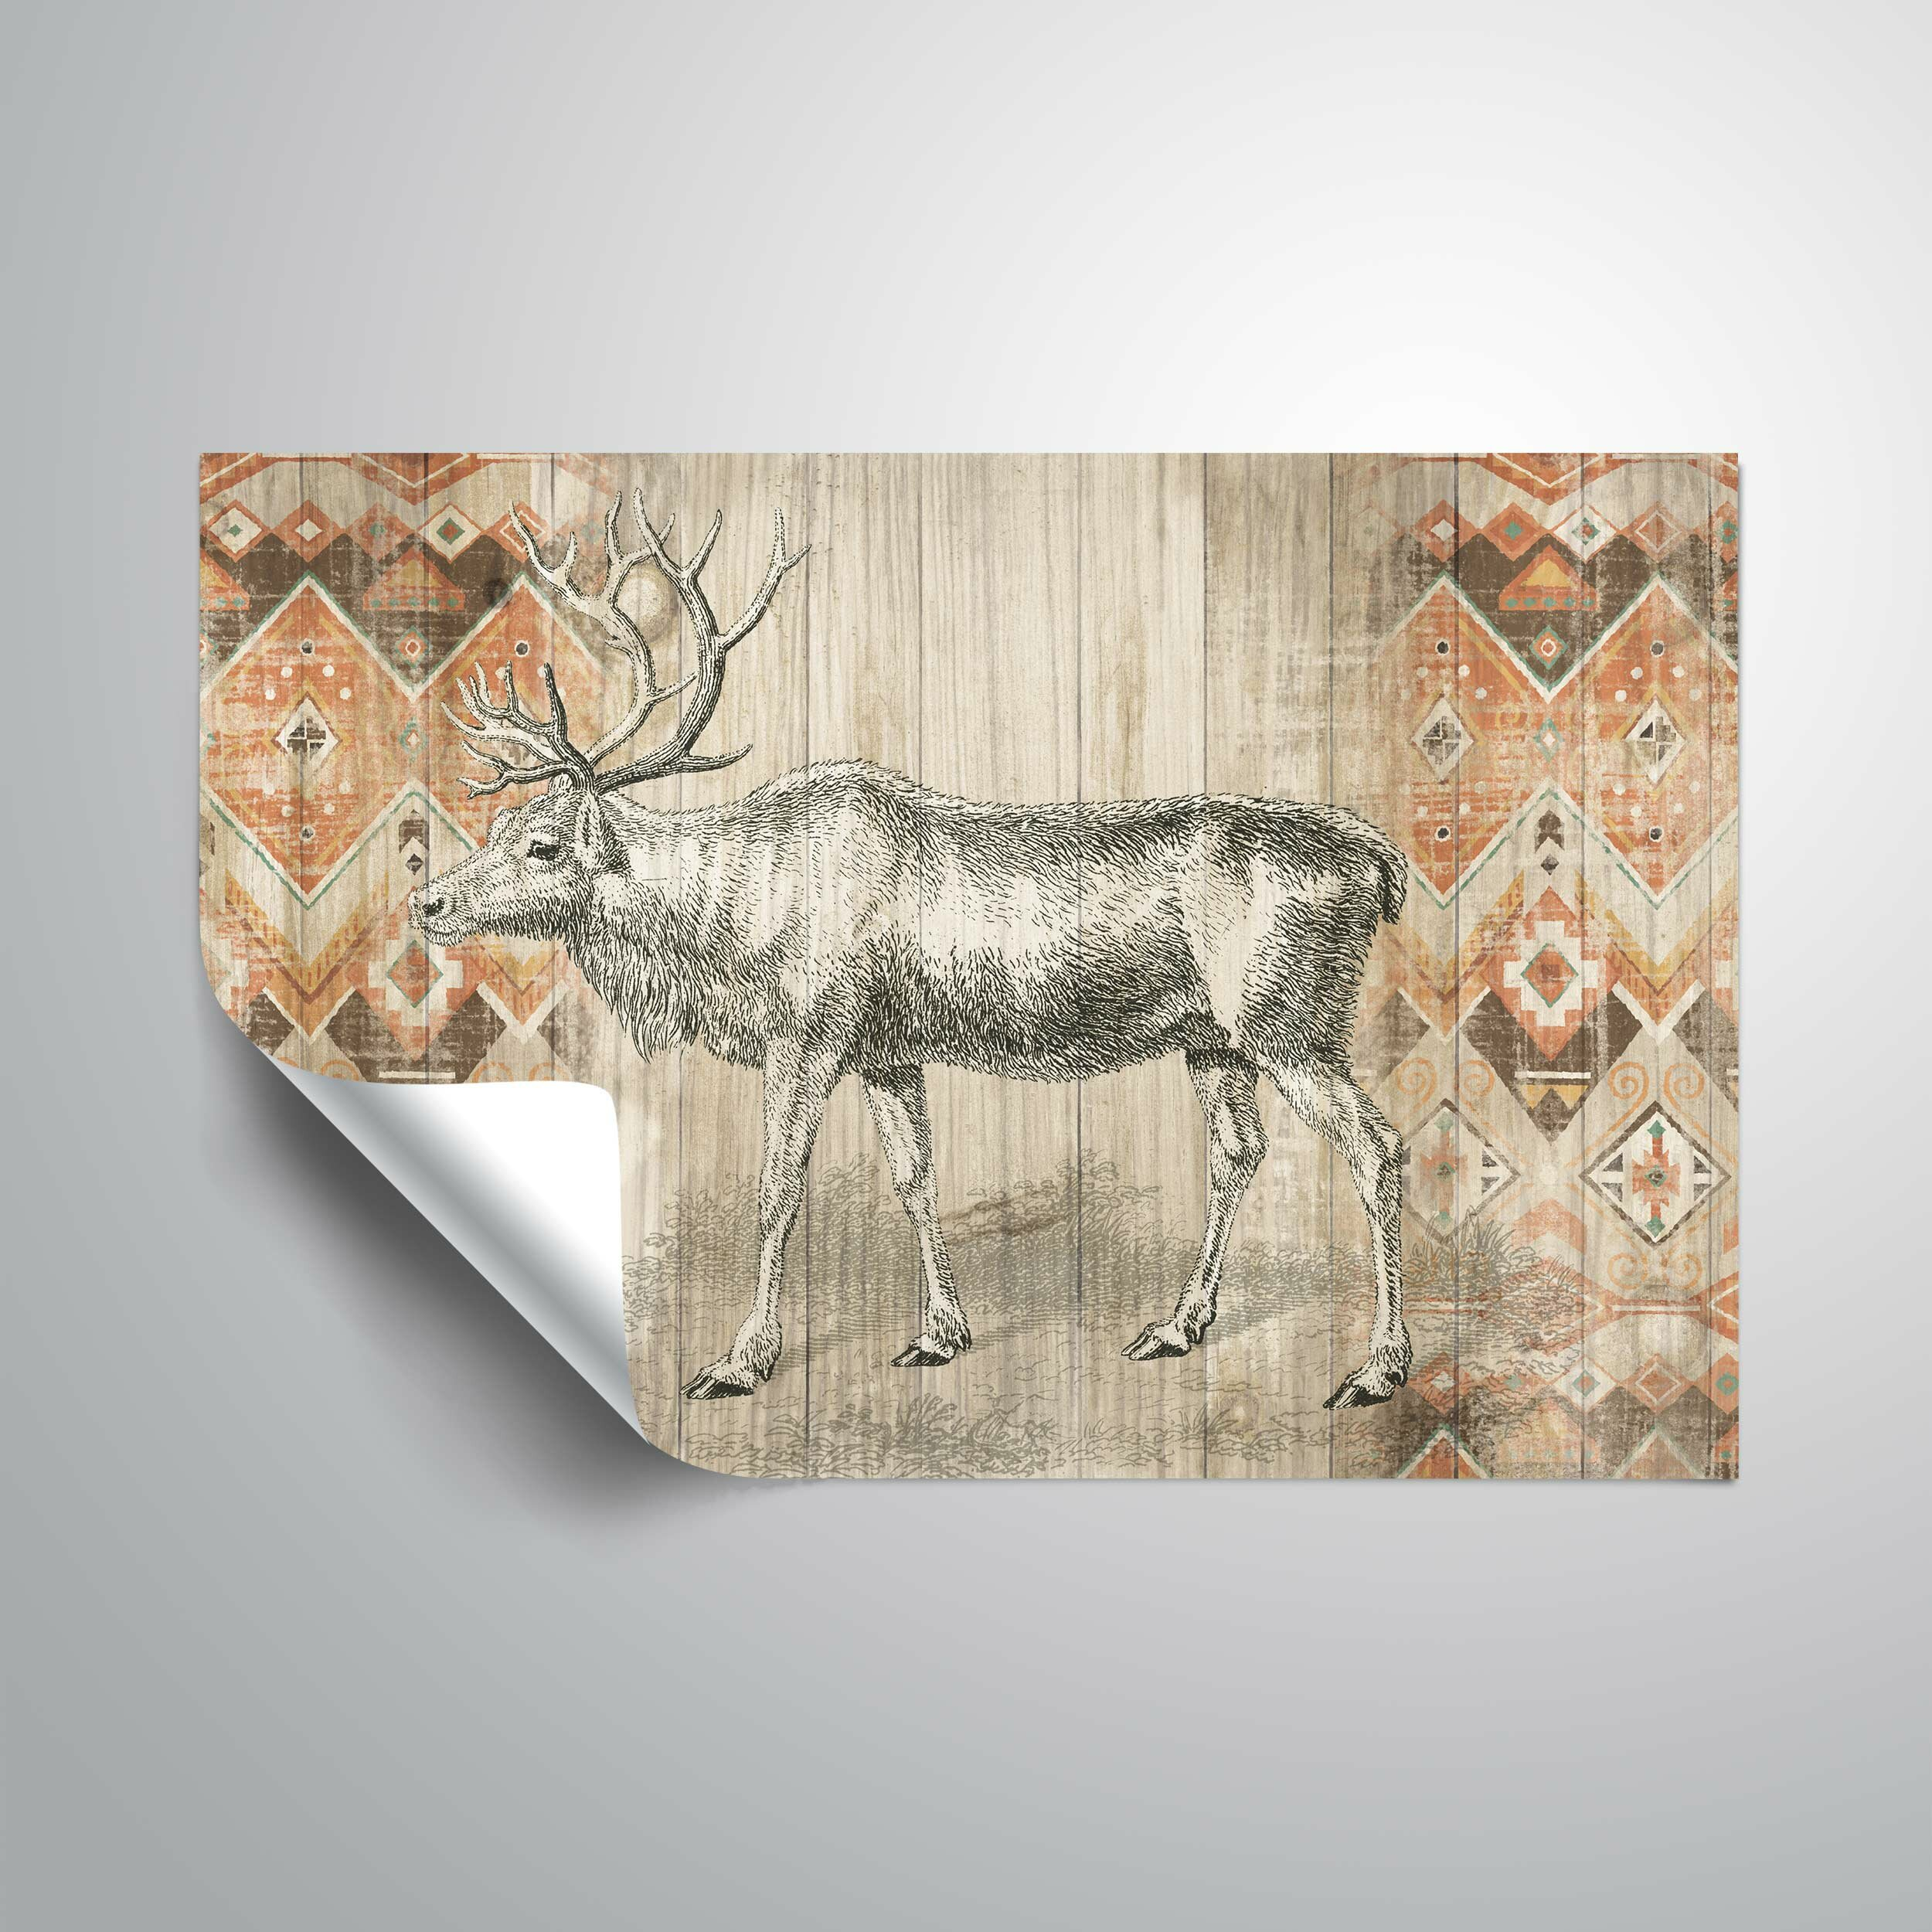 Millwood Pines Natural History Lodge Southwest Ix Wall Decal &